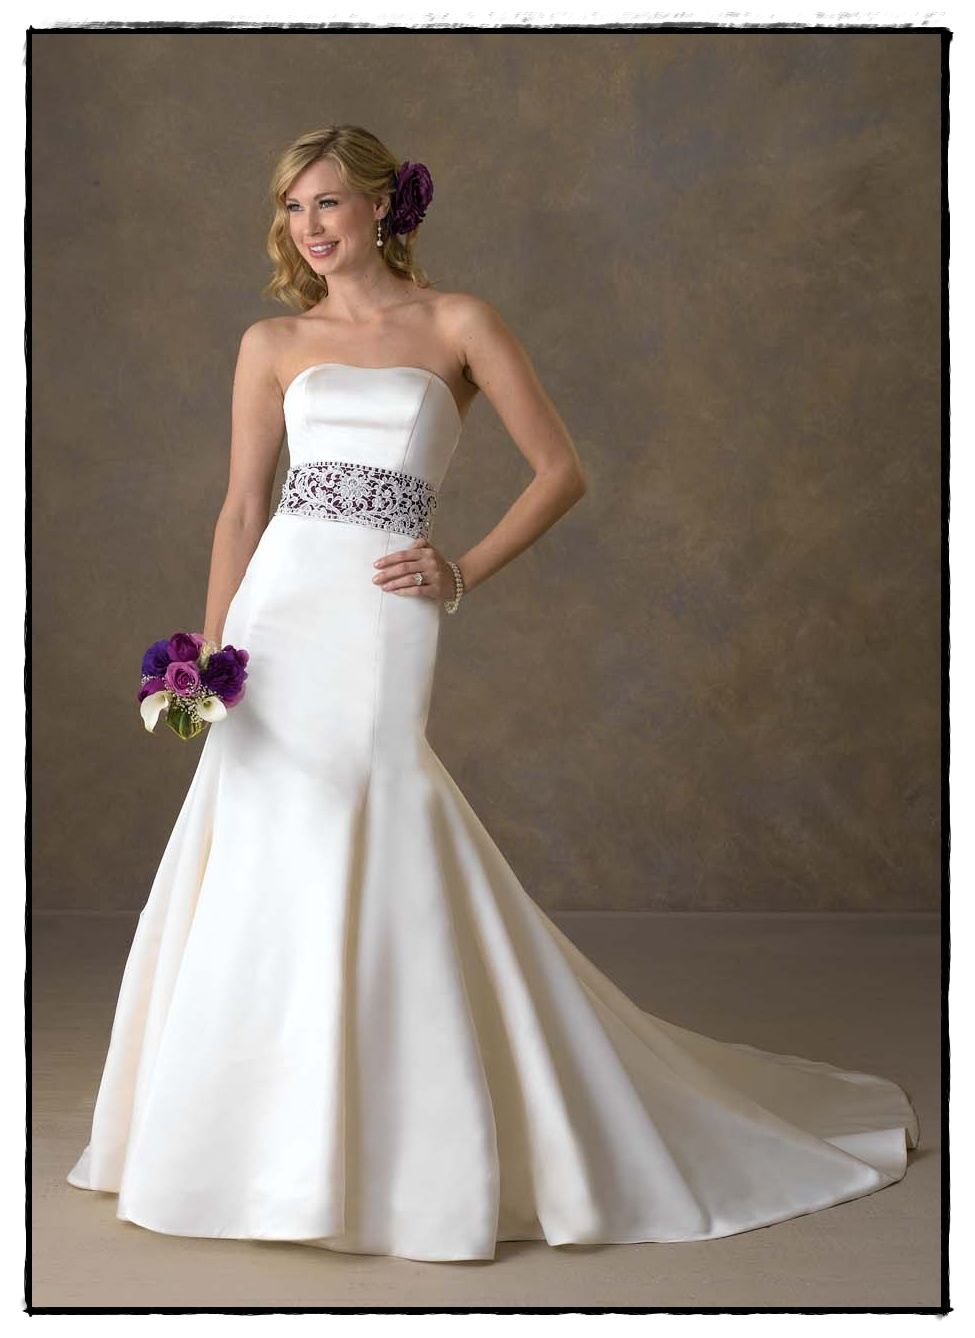 Blog: Add A Little Color To Your Wedding Gown